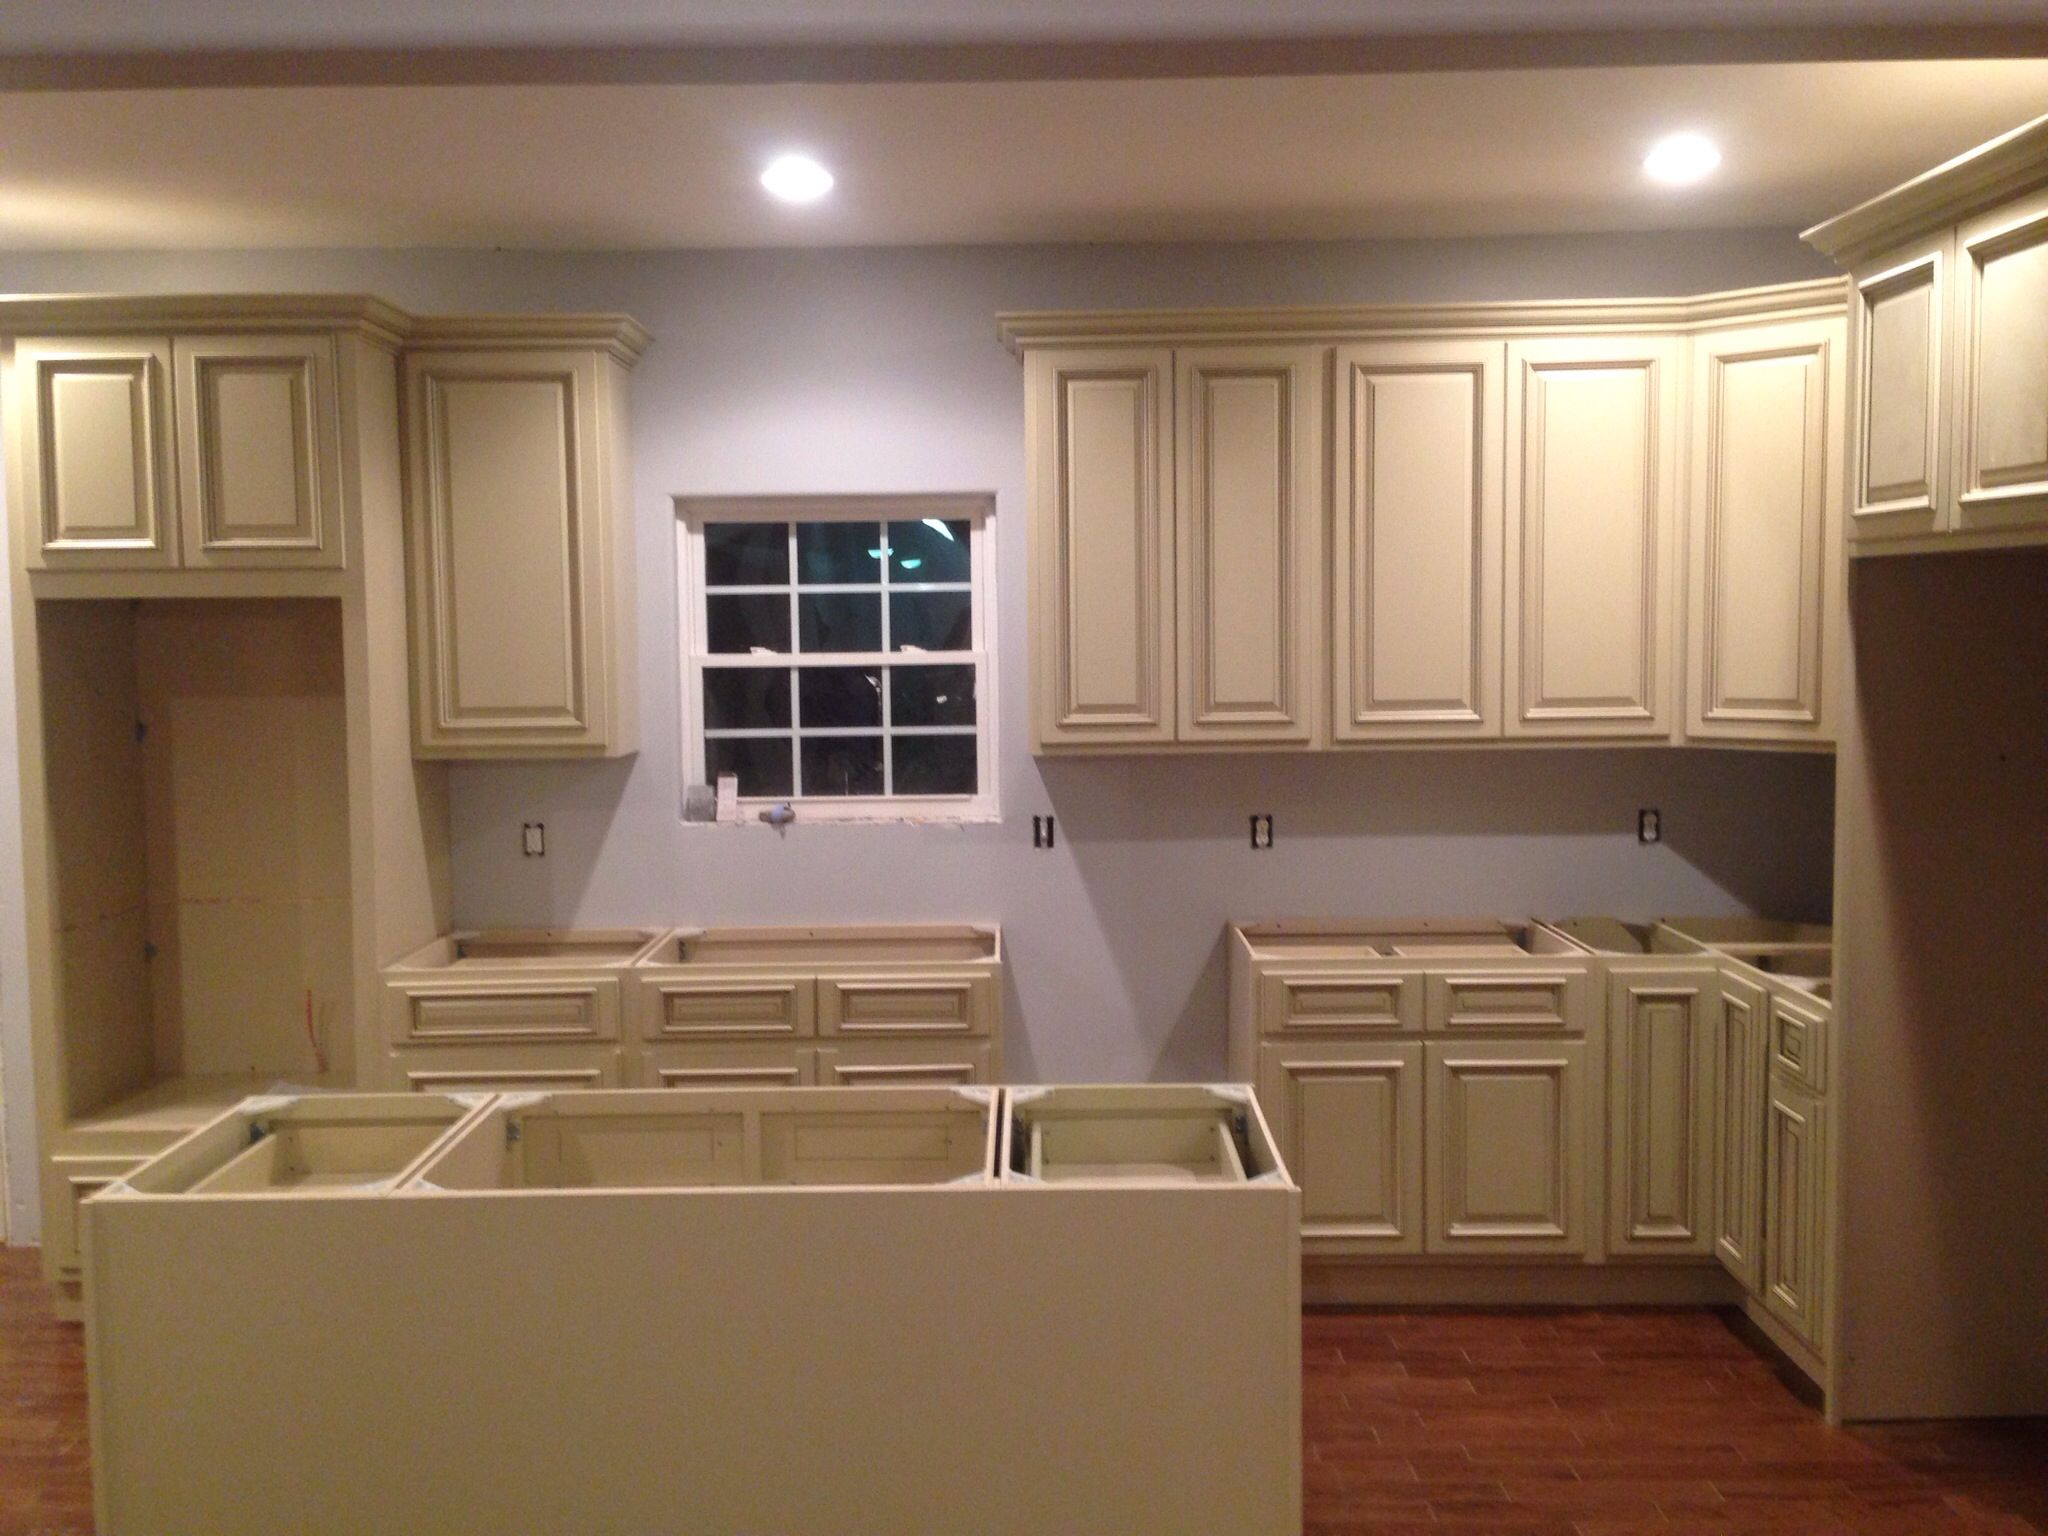 Heritage Antique White Cabinets Refinishing Cabinets White Kitchen Cabinets Refinishing Kitchen Tables